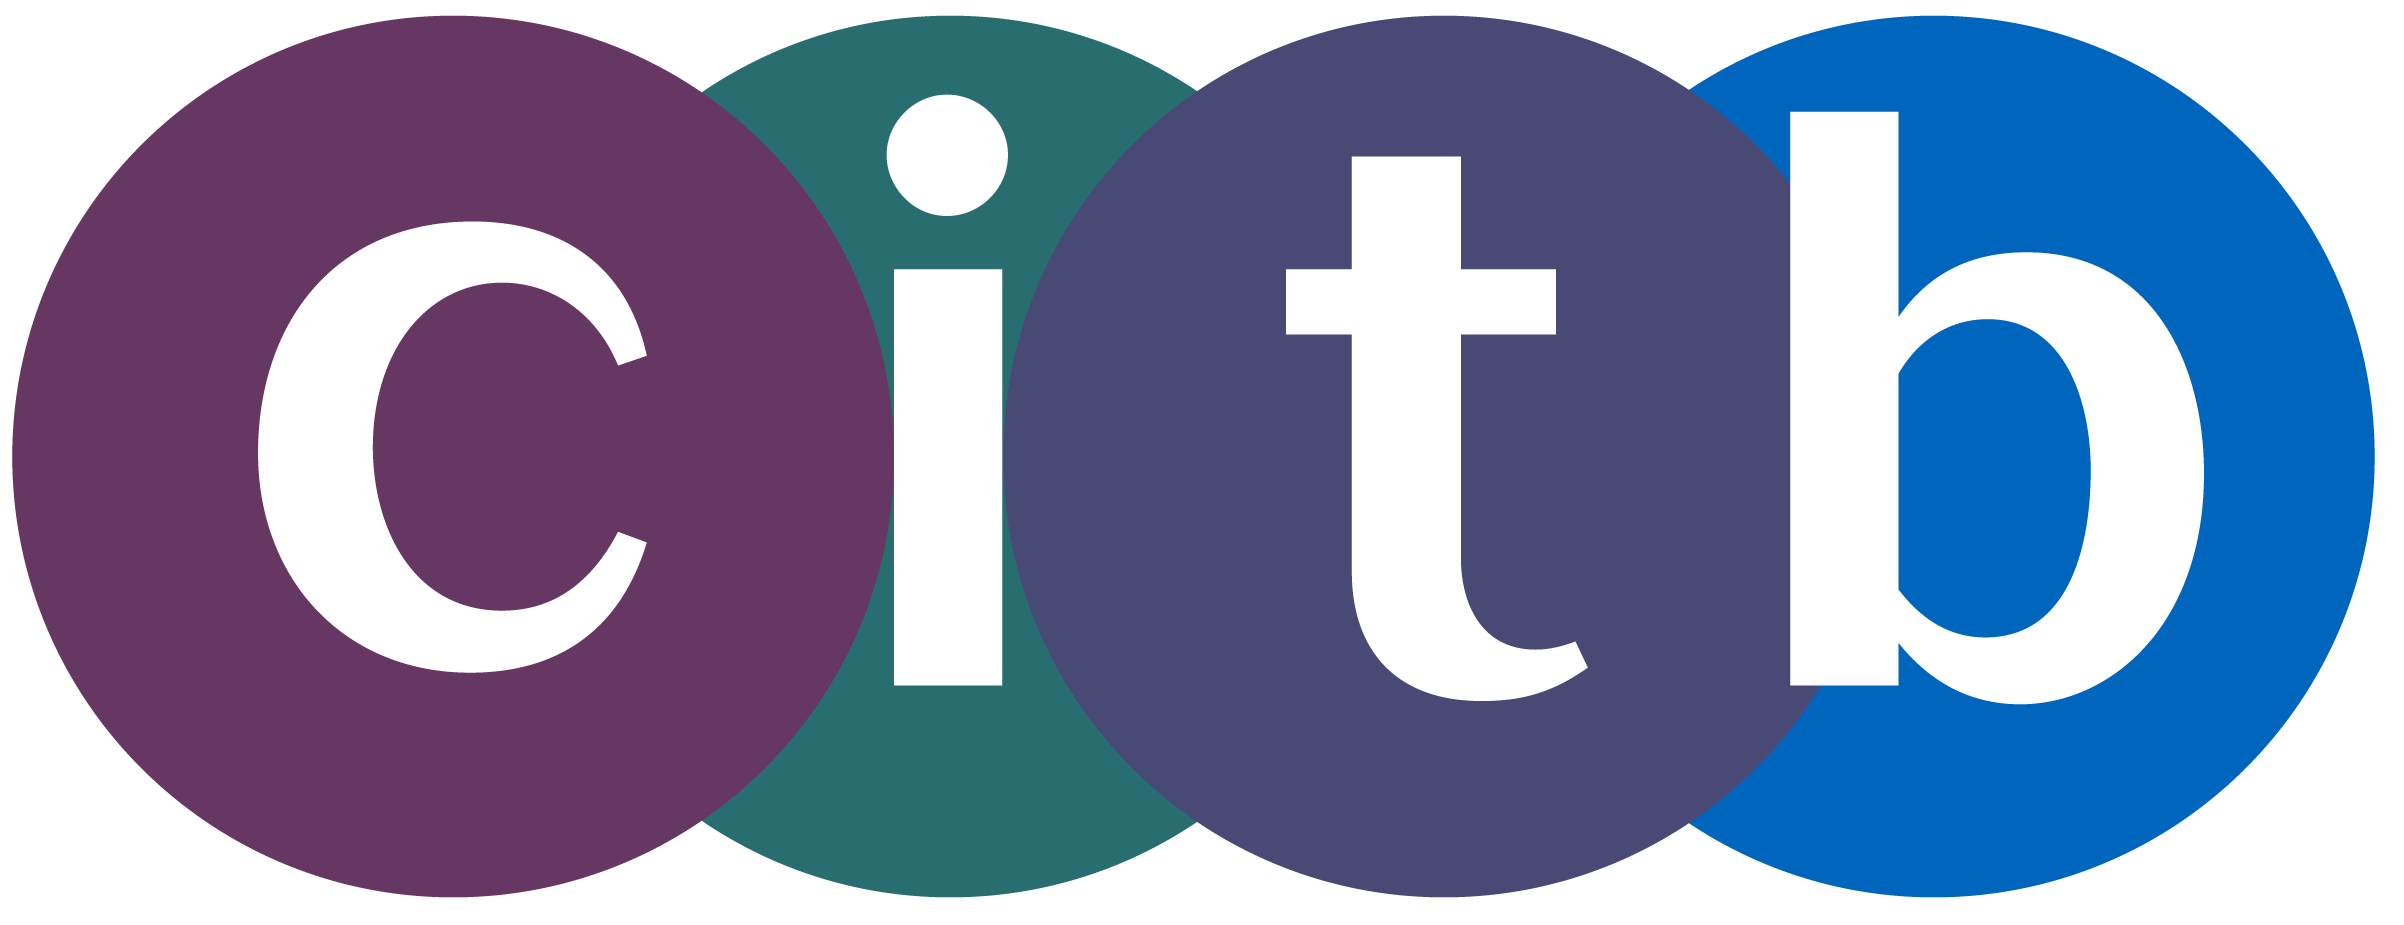 CITB or Construction Industry Training Board